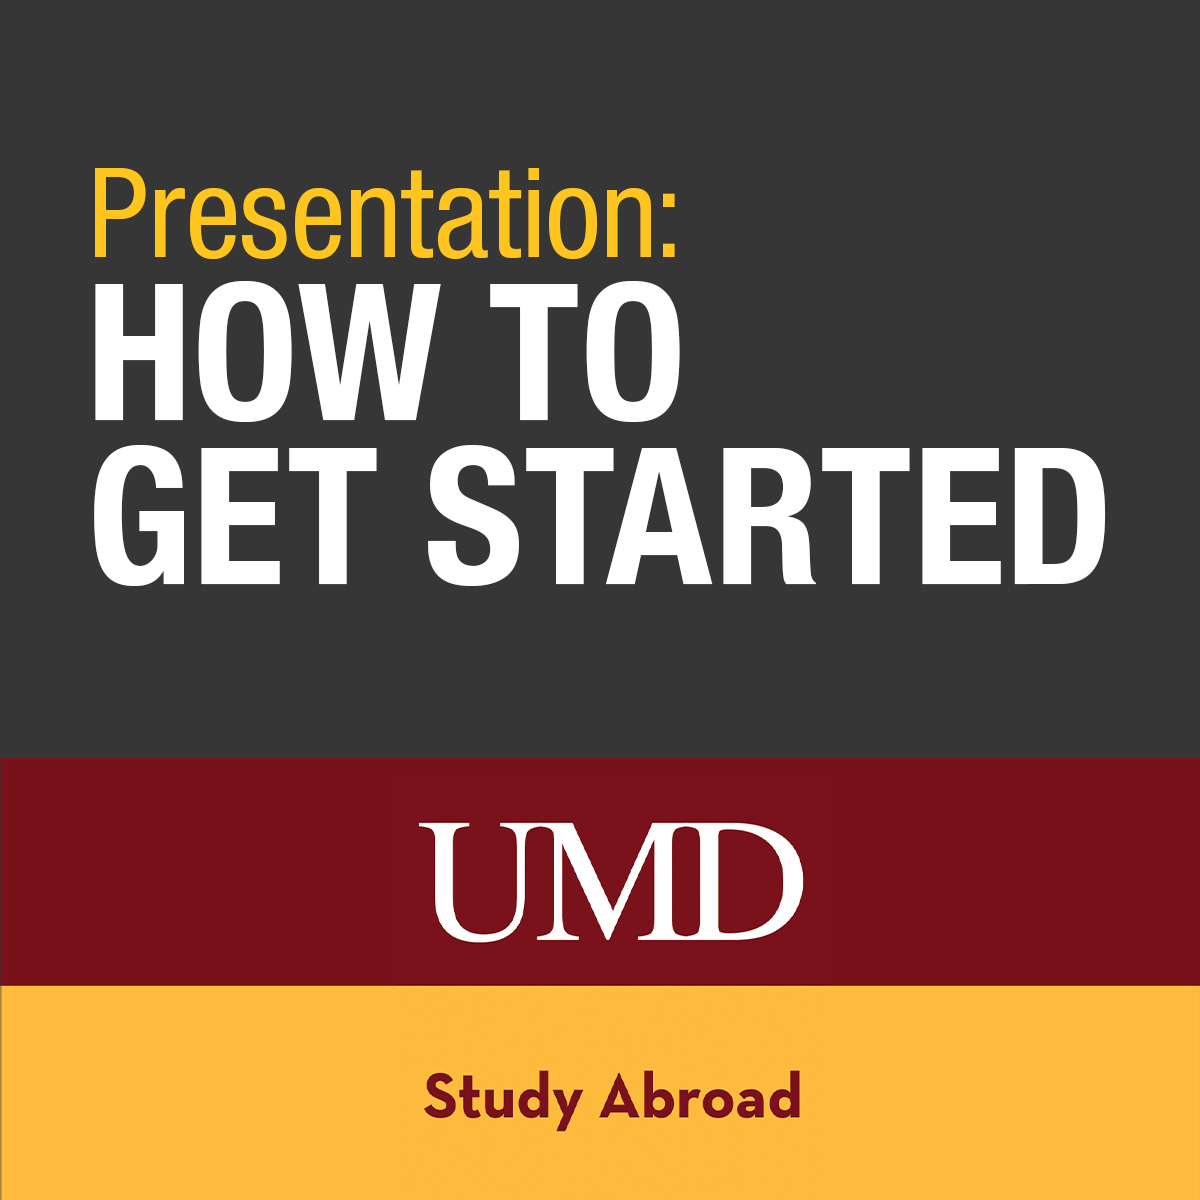 Presentation - How to get started